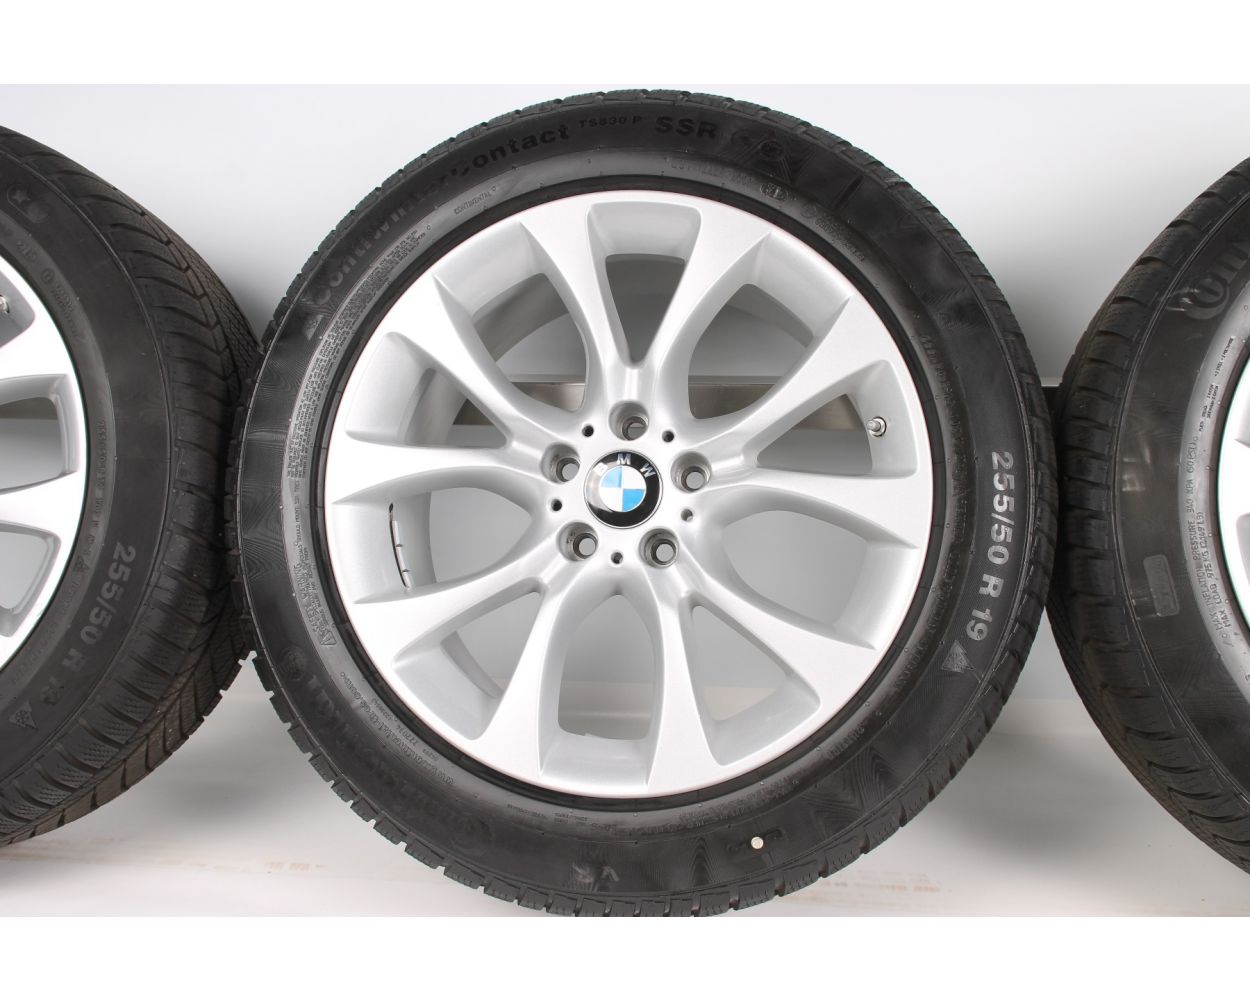 Bmw Winter Wheels X5 F15 E70 19 Zoll 450 V Spoke Rdc Silb